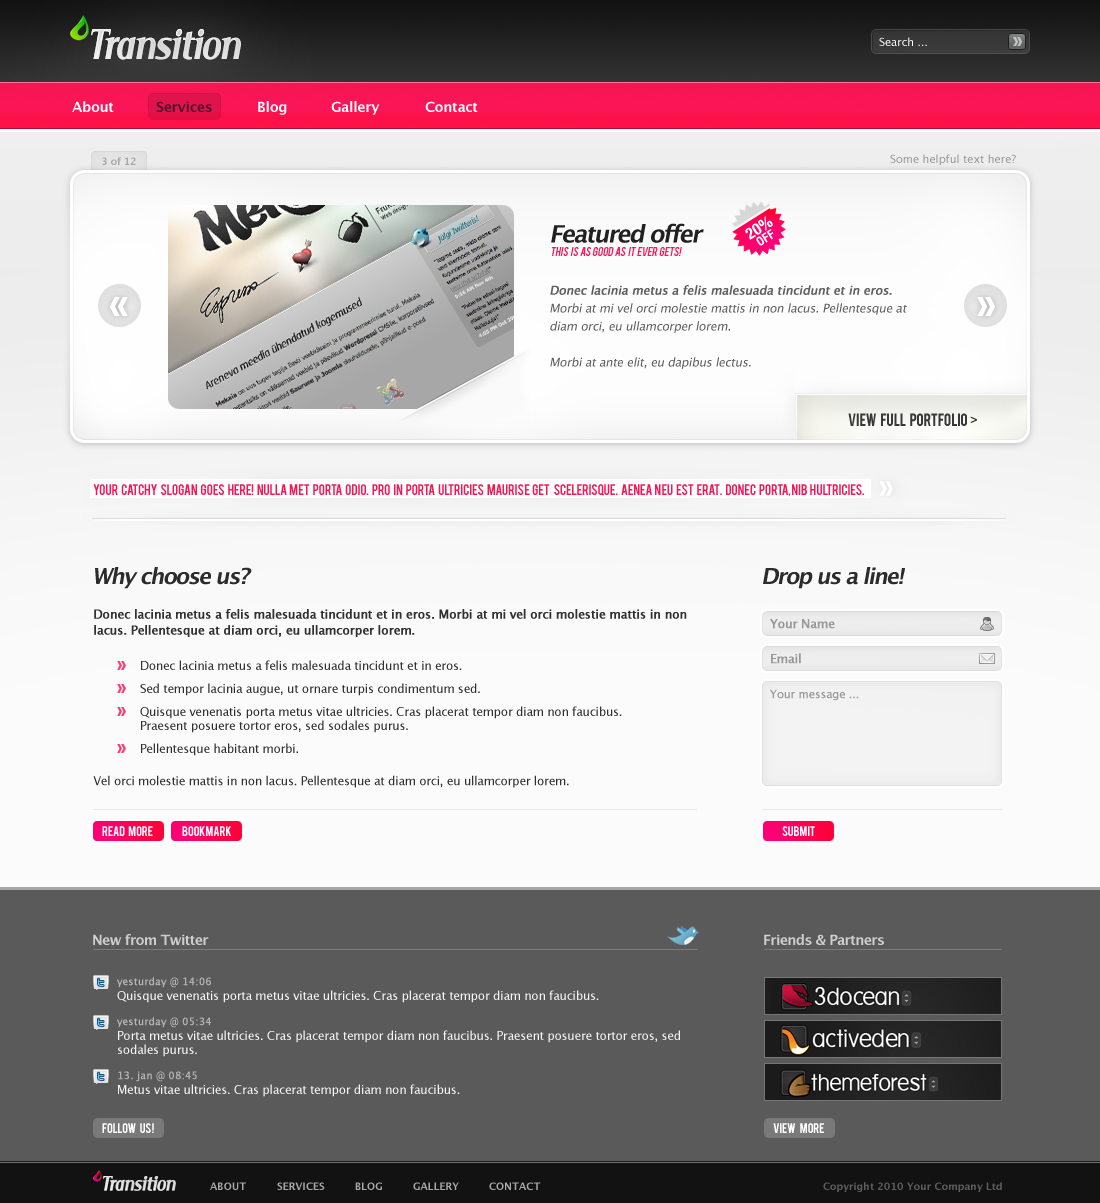 Free Download Transition portfolio/product gallery theme Nulled Latest Version